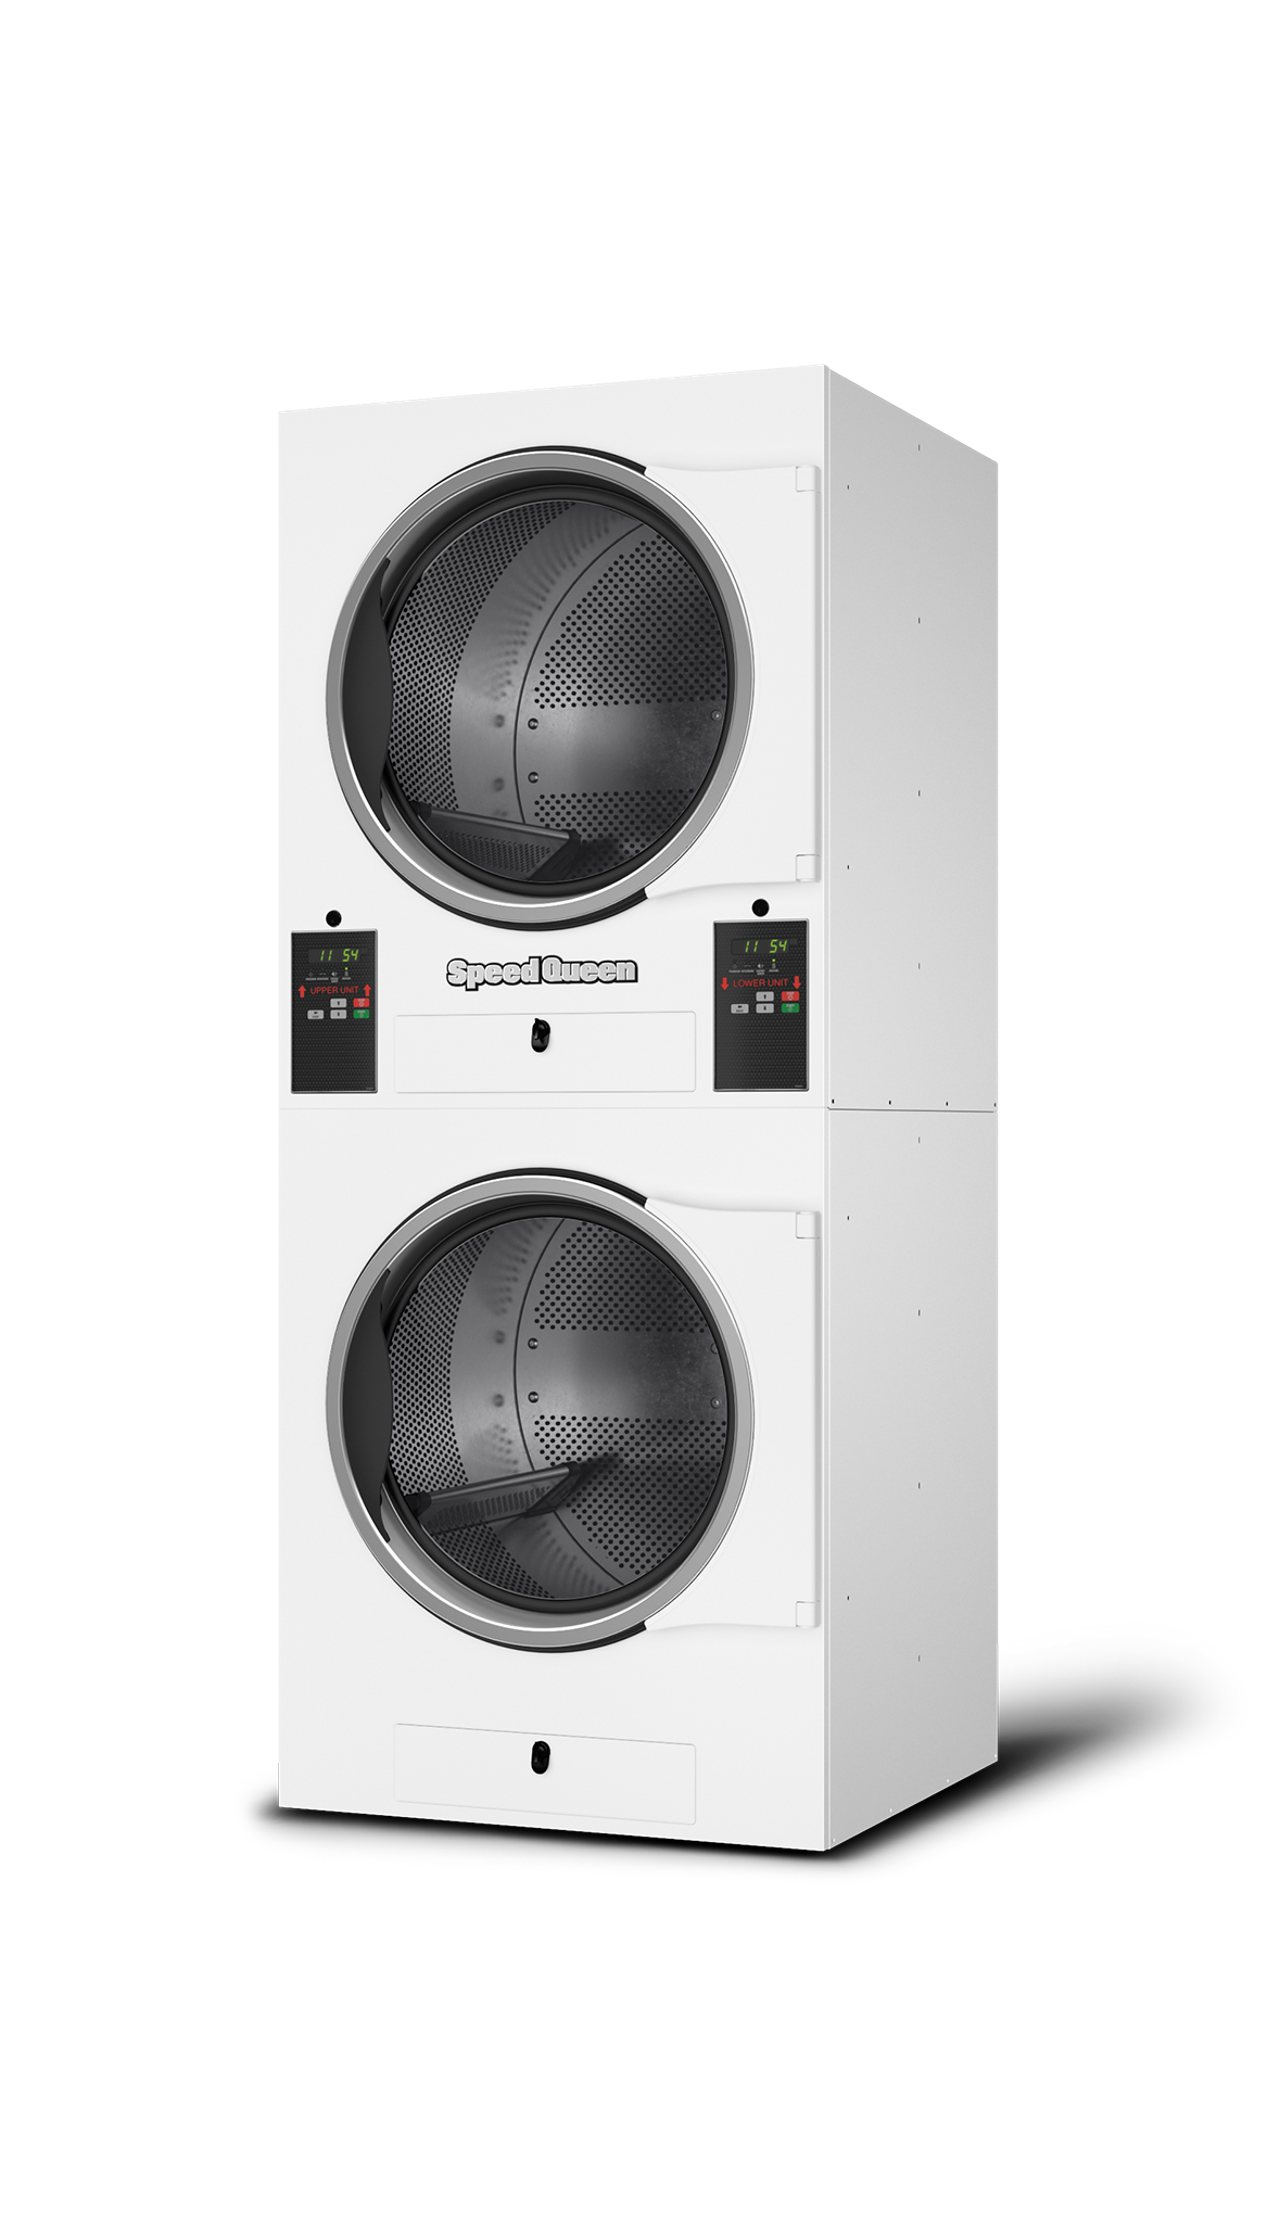 Speed Queen Quantum Non-Vended Stack Tumble Dryers